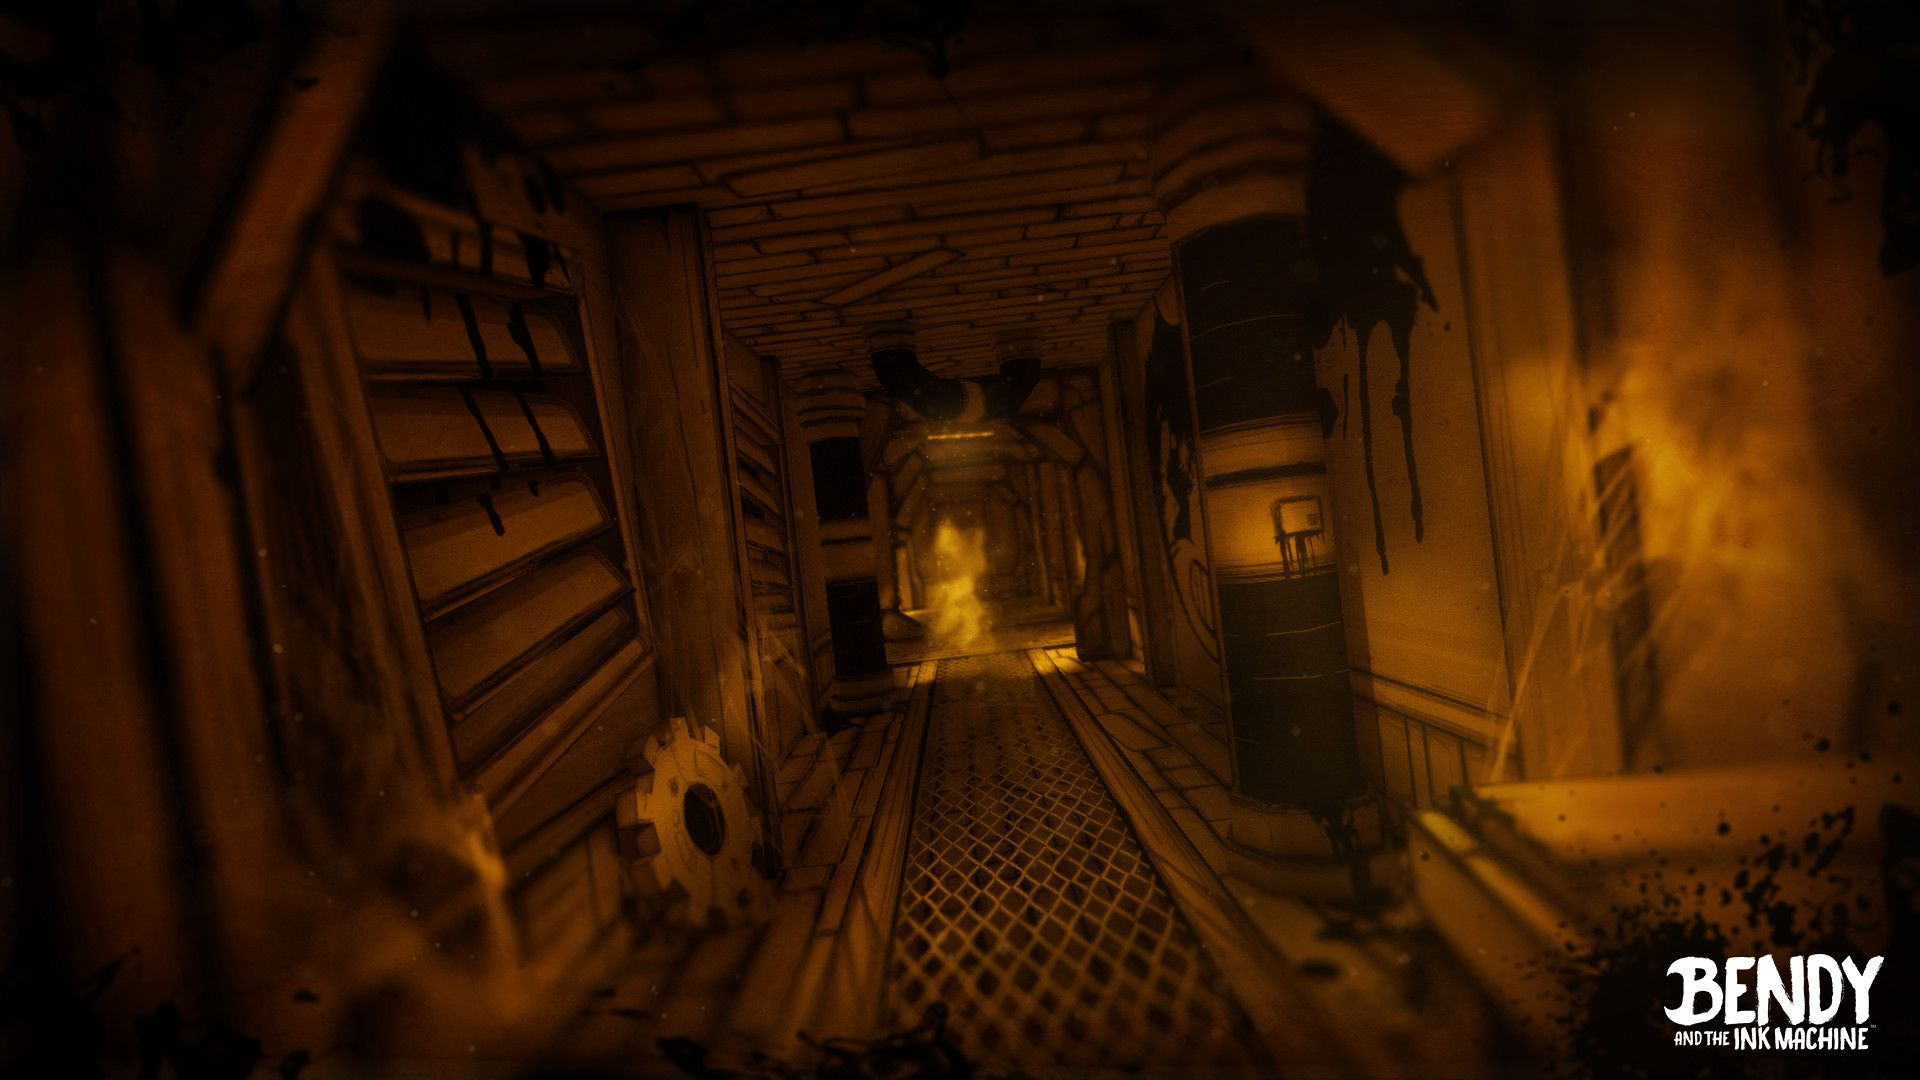 Screenshot Du Chapitre 3 Bendy And The Ink Machine Ink Backrounds